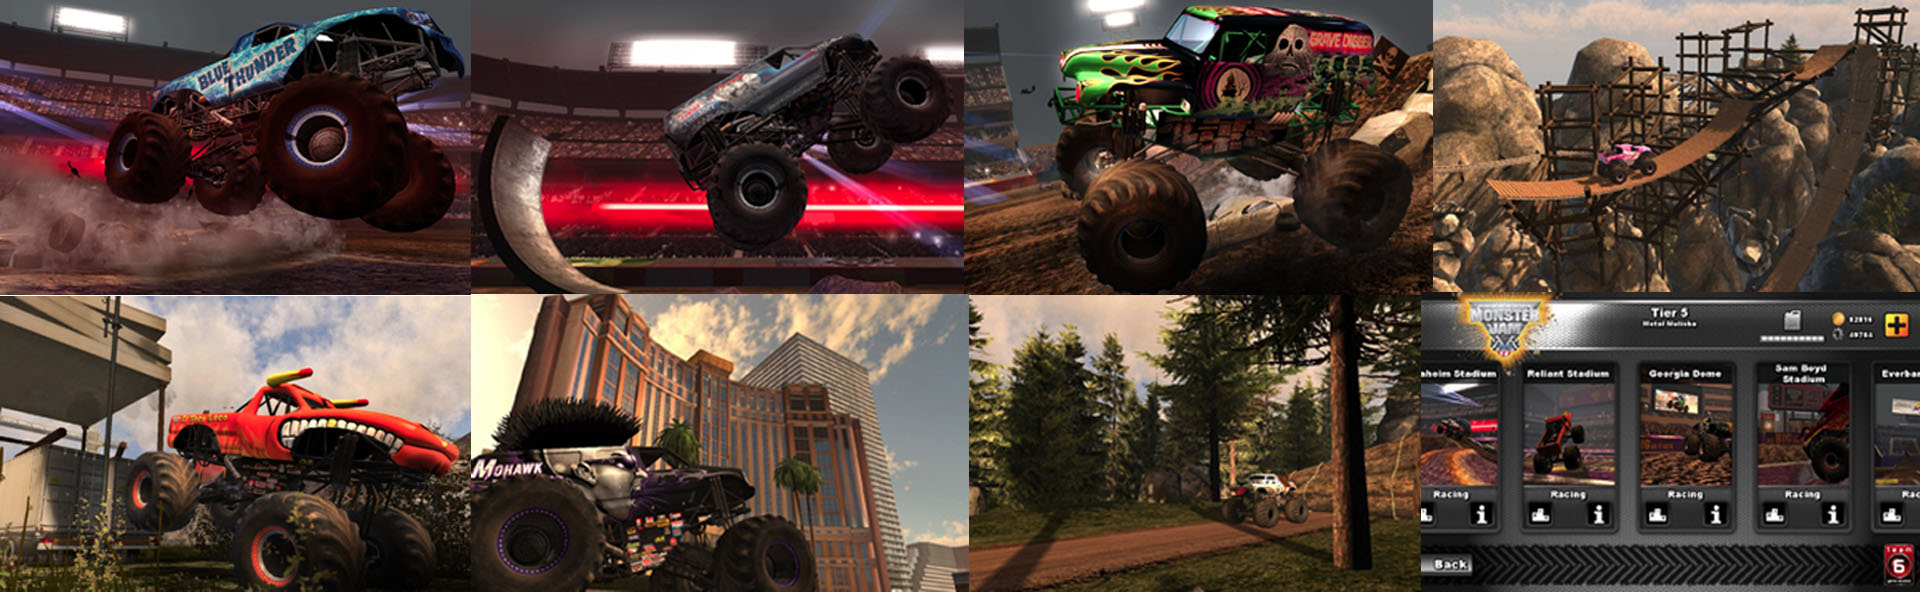 Monster Jam Mobile Game App Screenshots